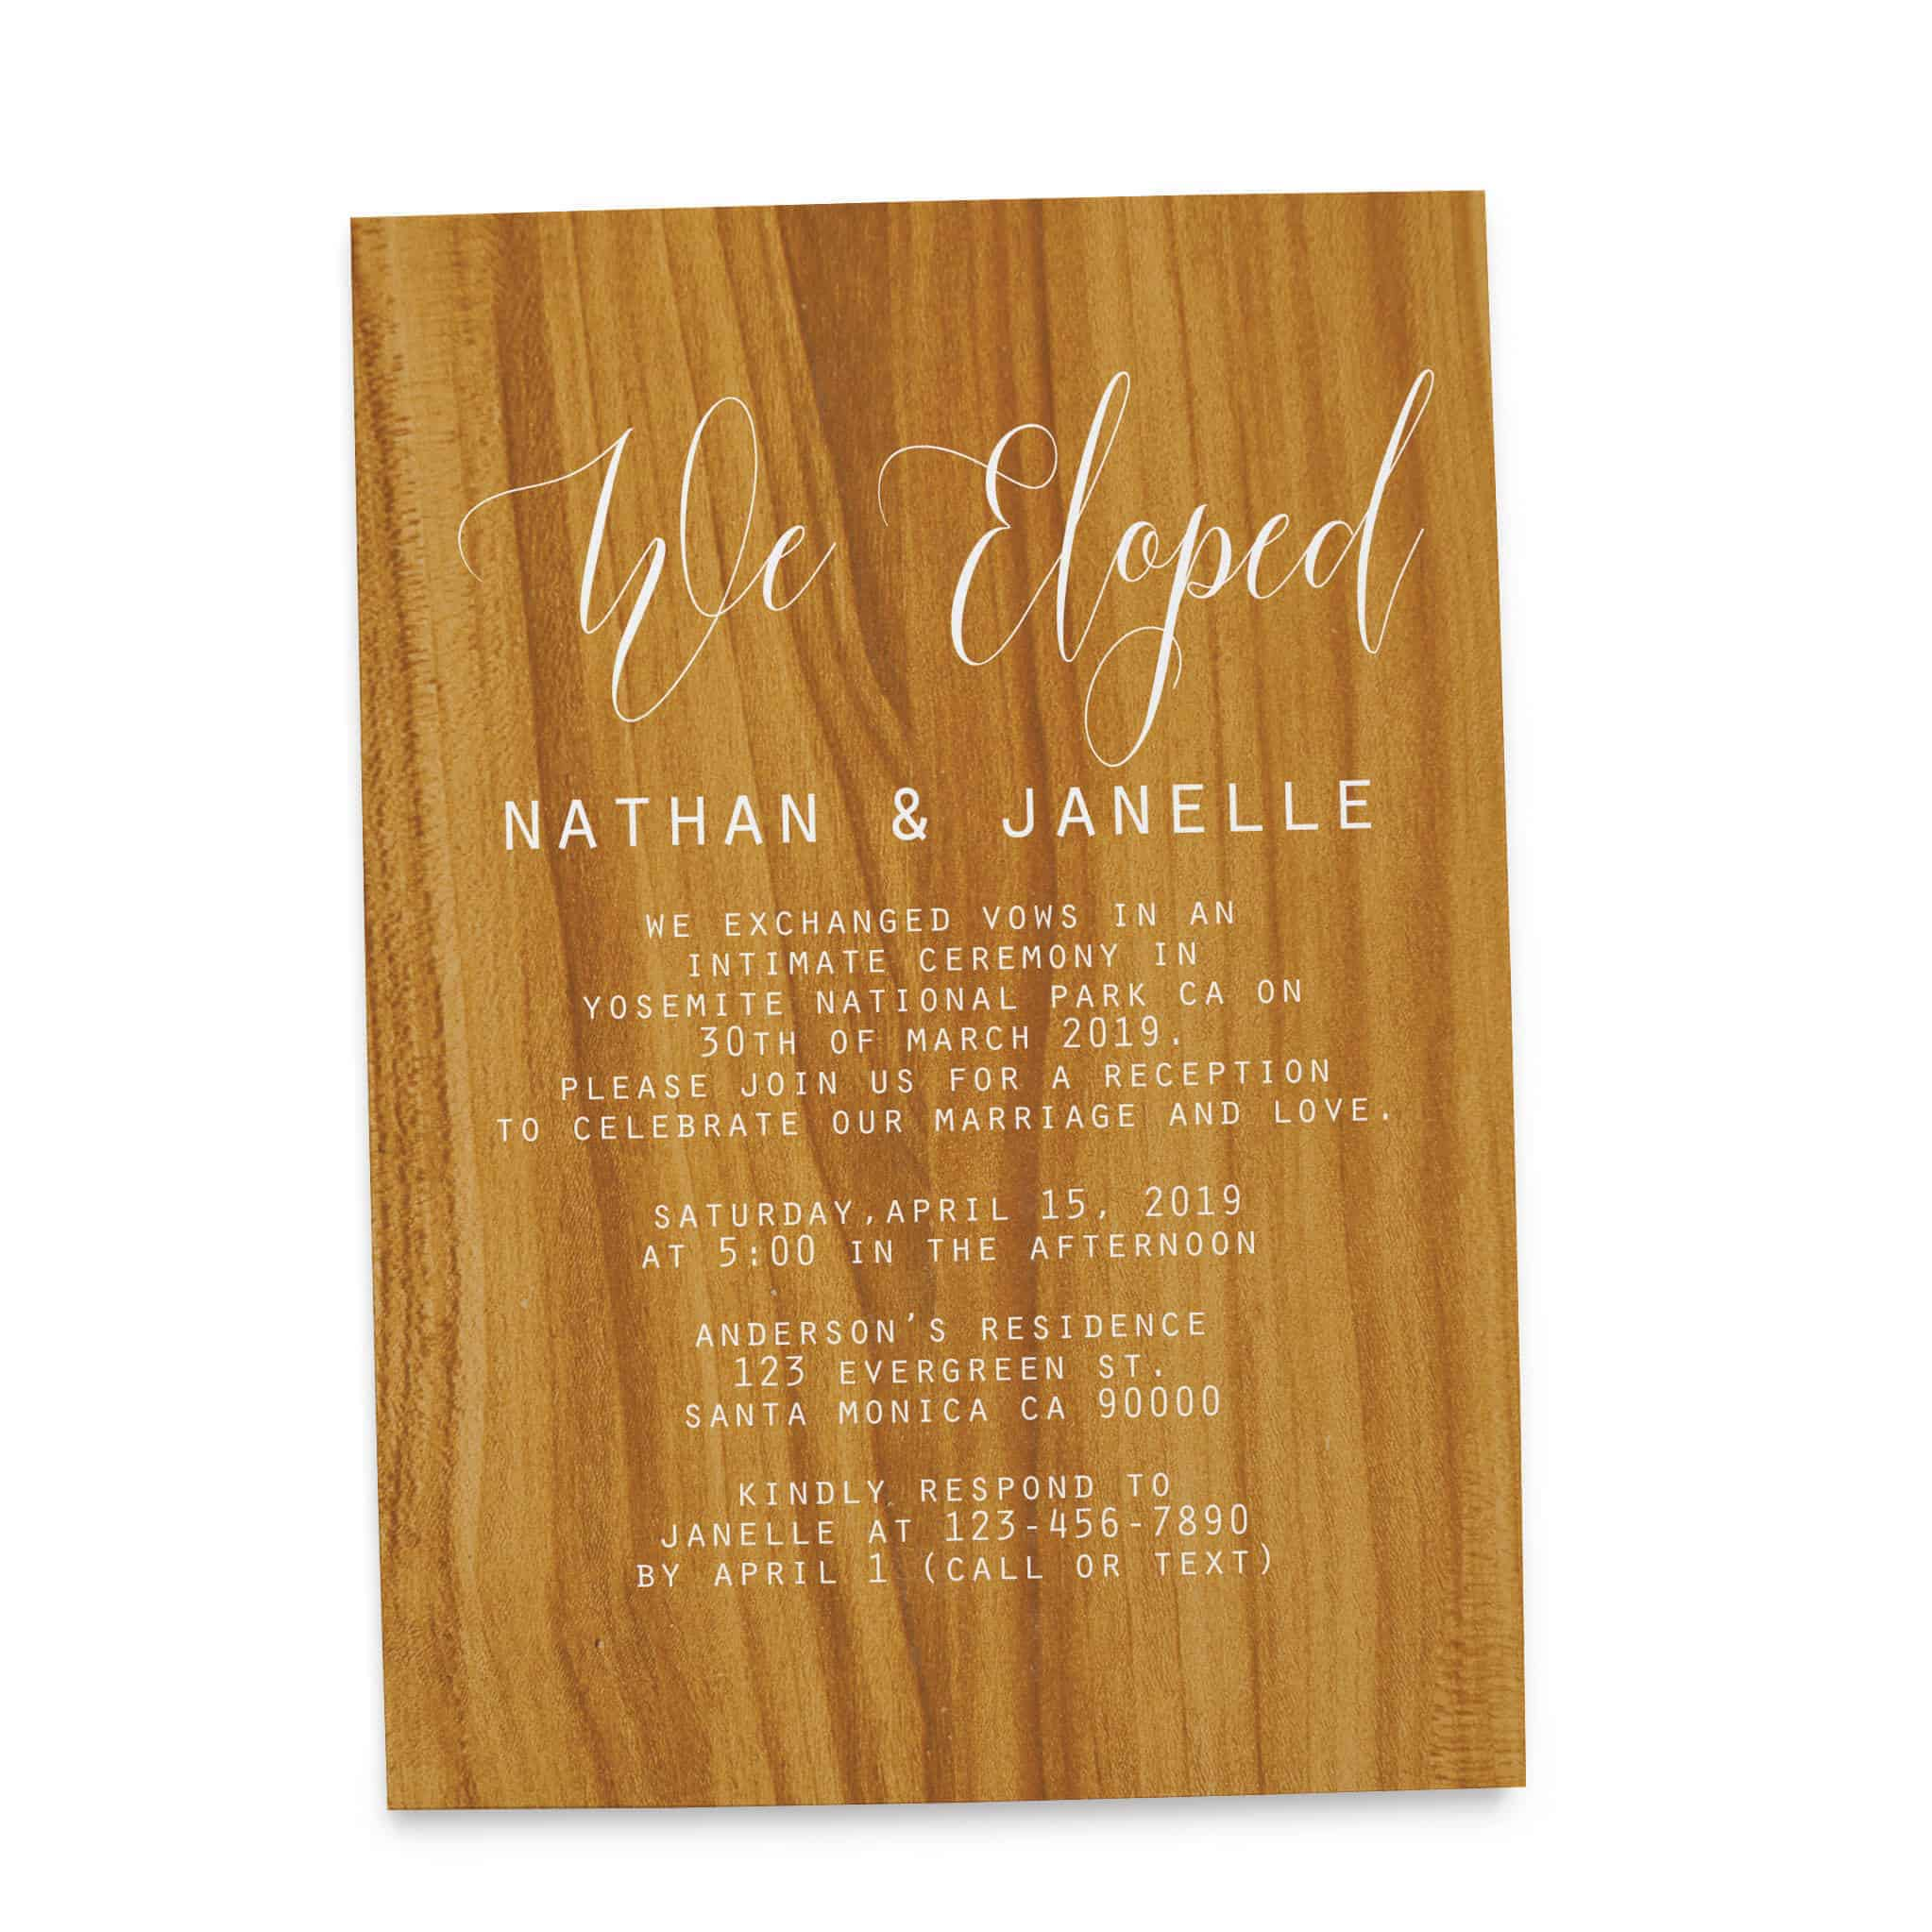 Rustic Wedding Reception Cards for Casual Party, Dinner and BBQ